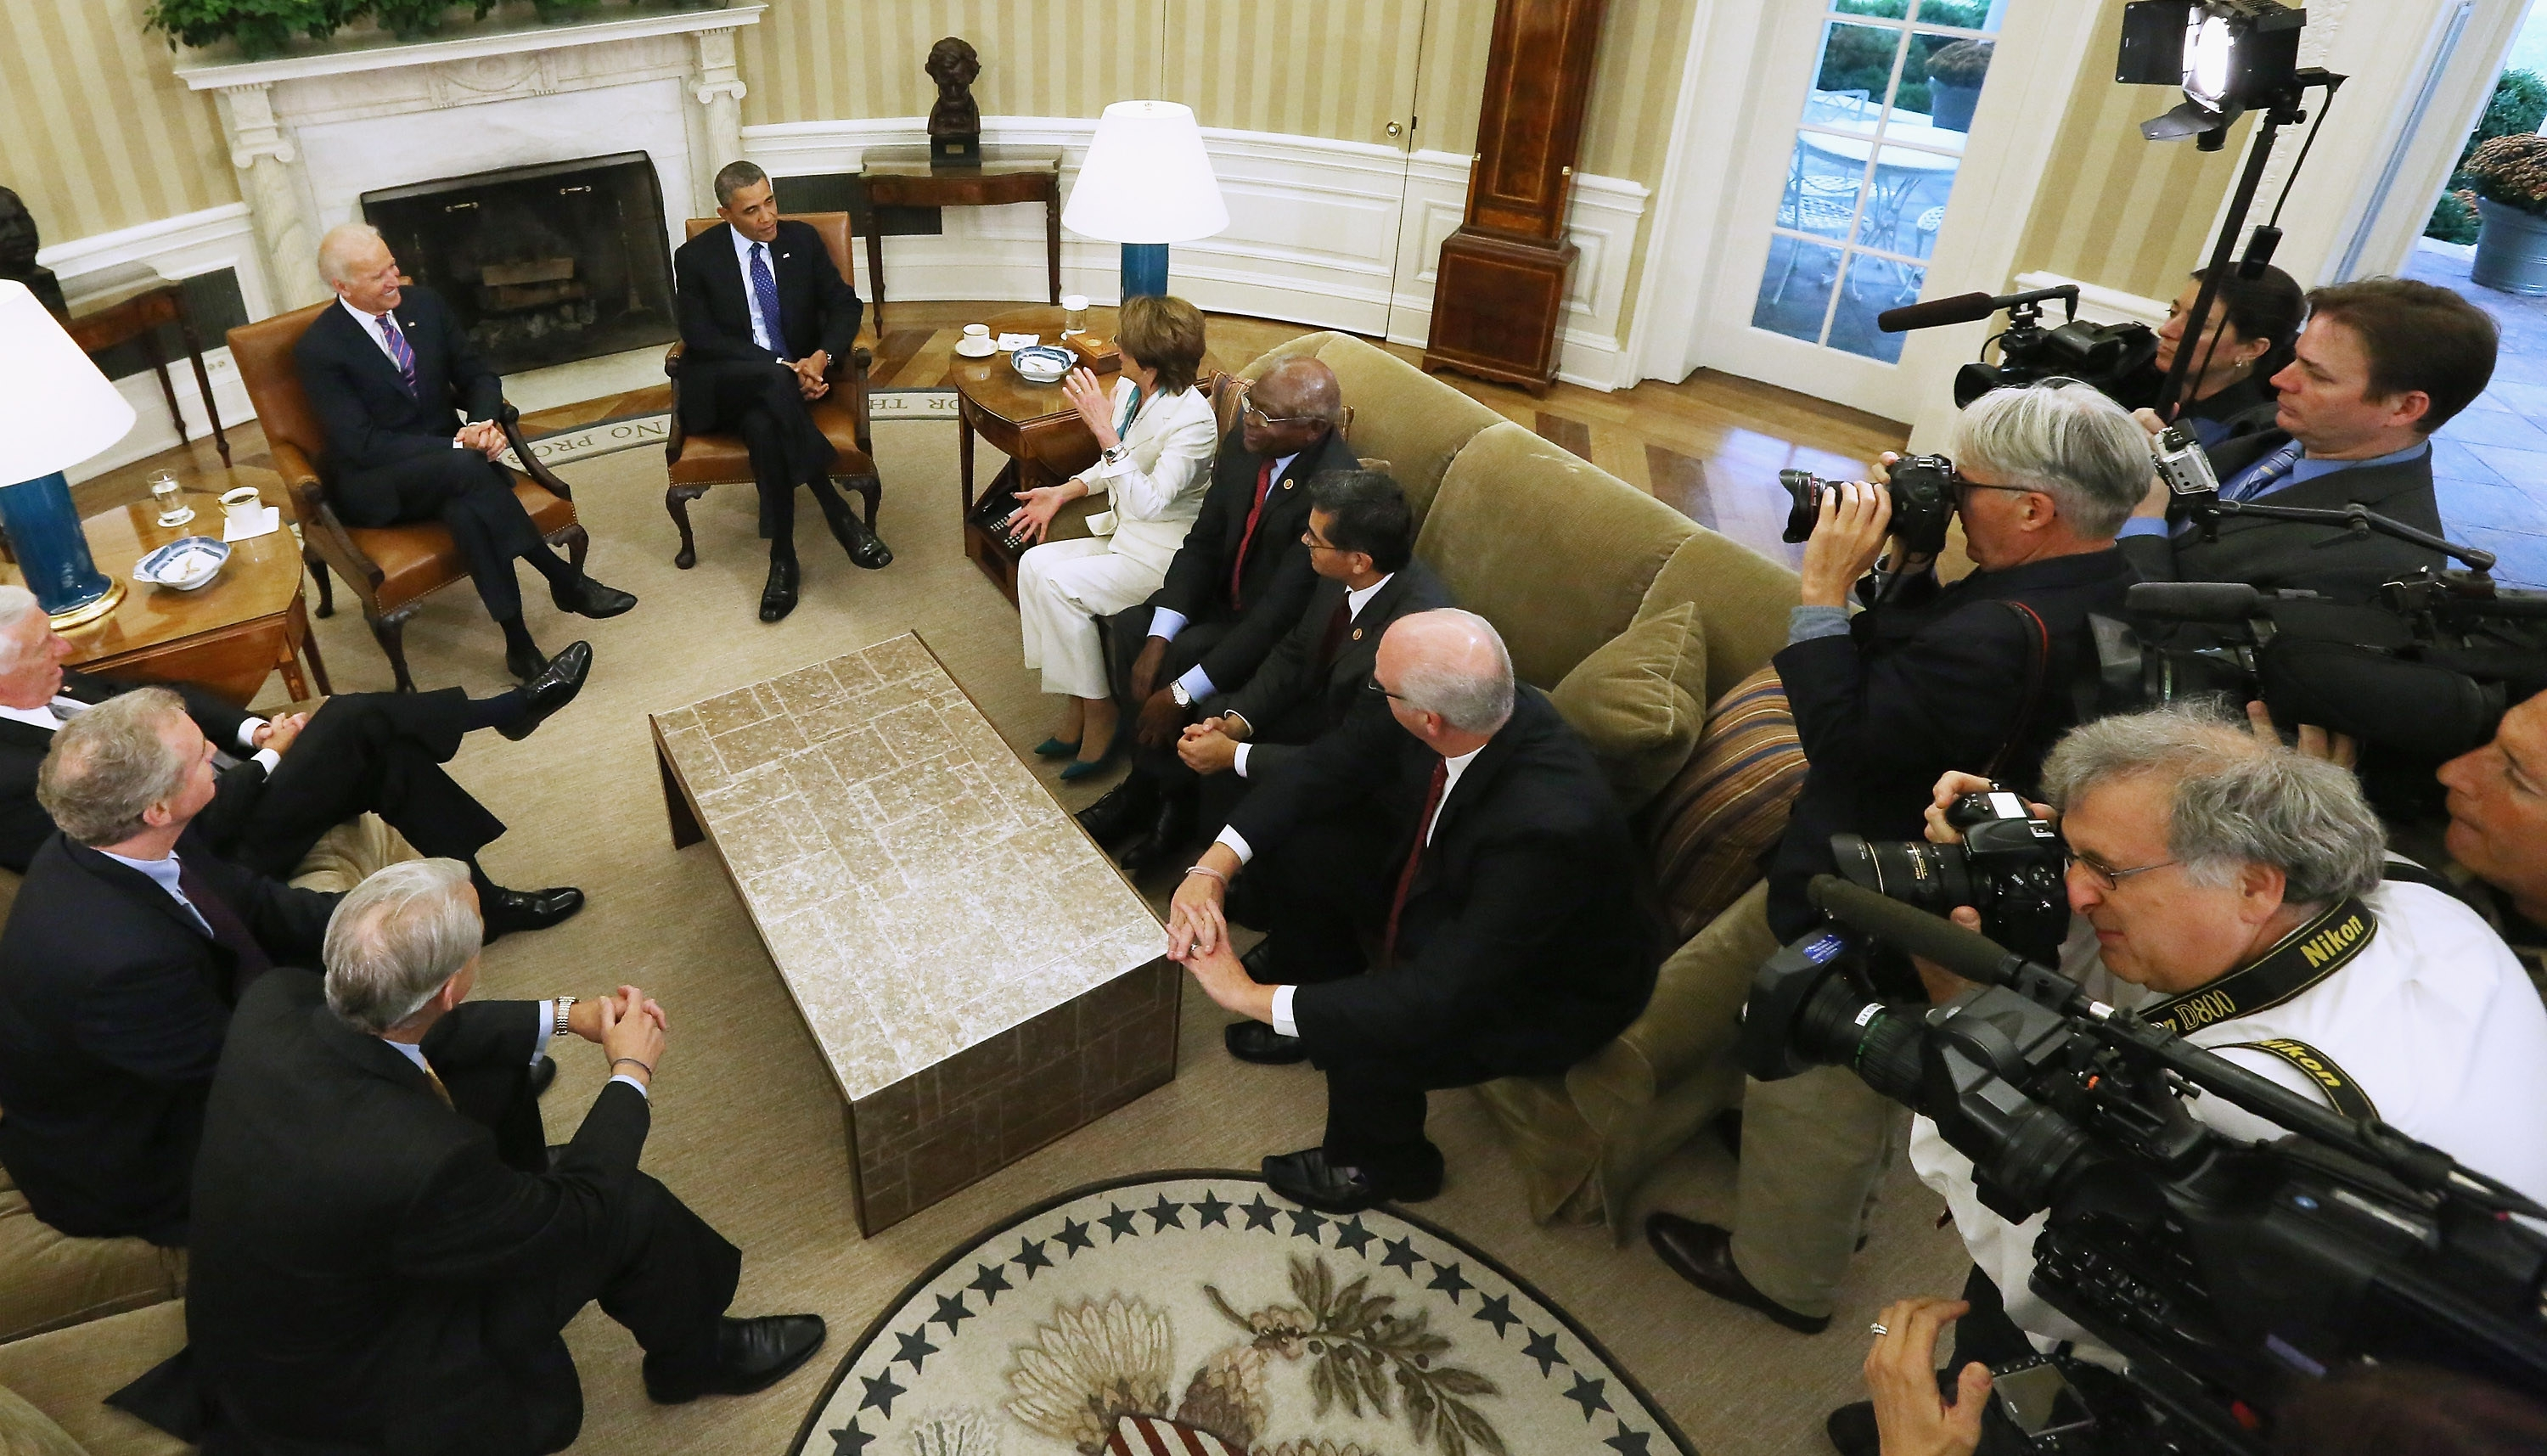 President Obama and Vice President Biden meets with House Democratic leaders in the Oval Office at the White House Tuesday as the debt limit looms and the partial shutdown of the government moves into its third week.